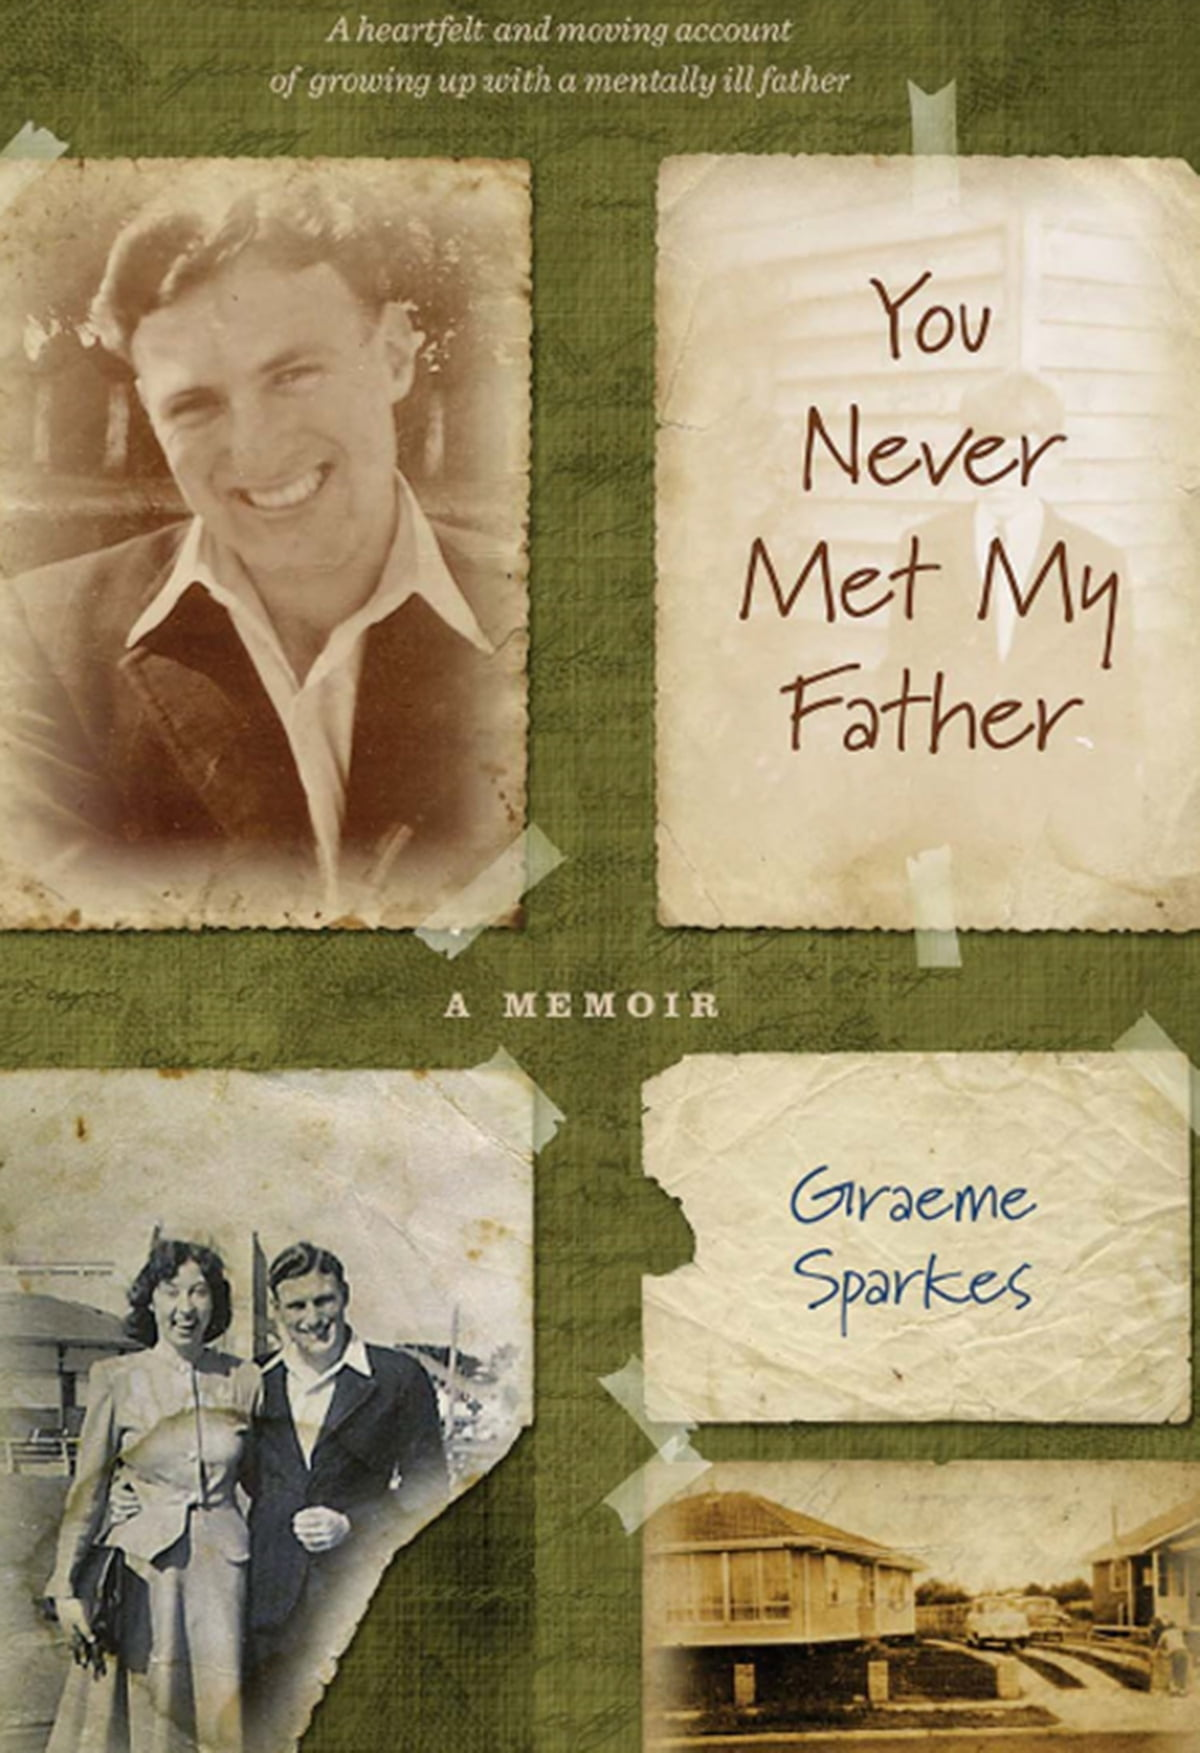 You never met my father ebook by sparkes 9780992590048 rakuten you never met my father ebook by sparkes 9780992590048 rakuten kobo fandeluxe PDF